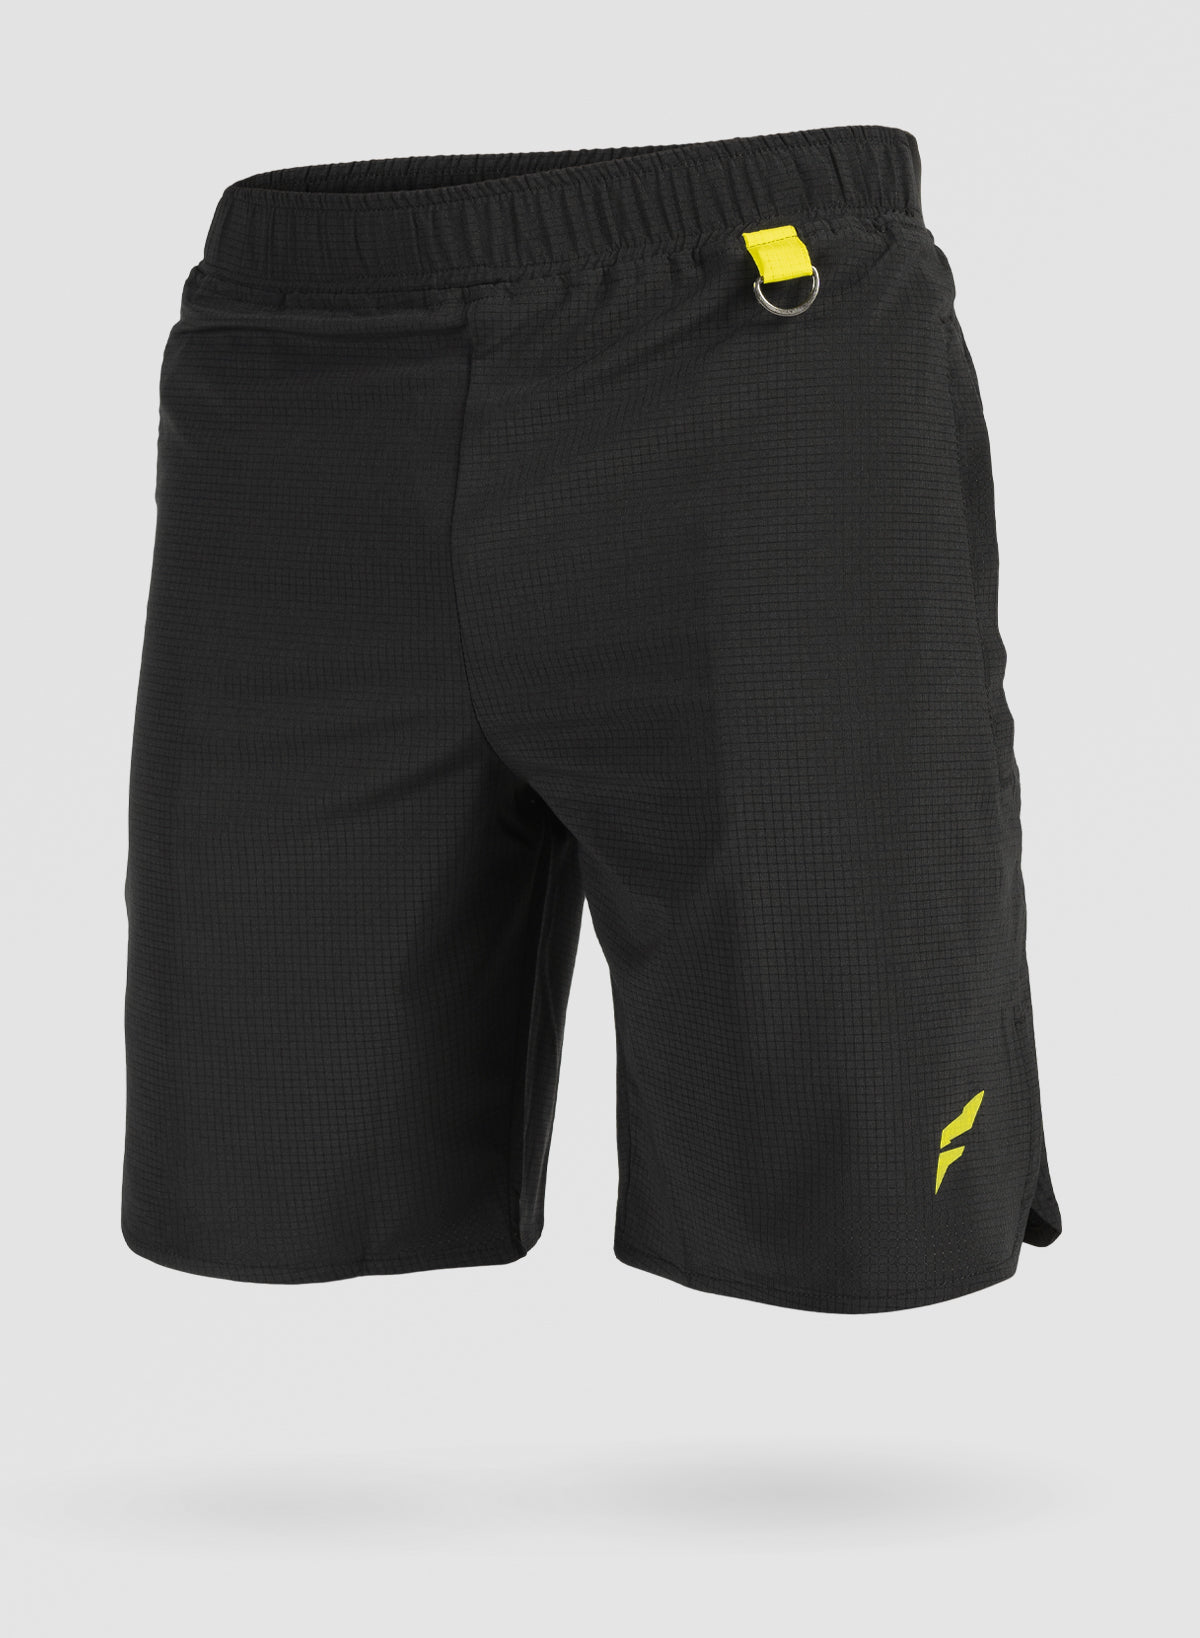 MEN'S TEK TRAINING SHORTS- BLACK